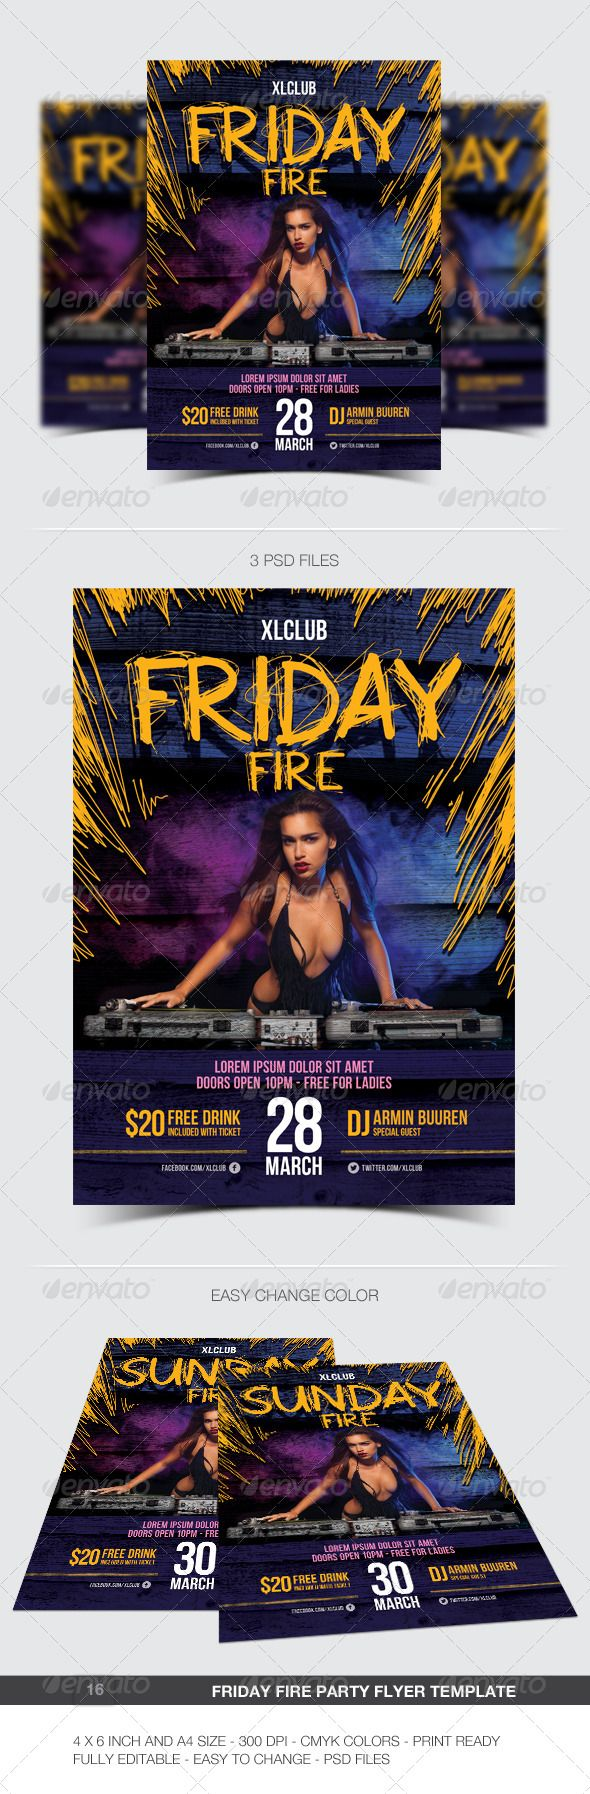 Friday Fire Party Flyer / Poster - 16 #a4 #blue #club #concert #dance #disco #dj #electro #electronic #event #everyday #fest #festival #fire #flyer #green #minimal #modern #monday #music #night #nightclub #party #saturday #sunday #yellow